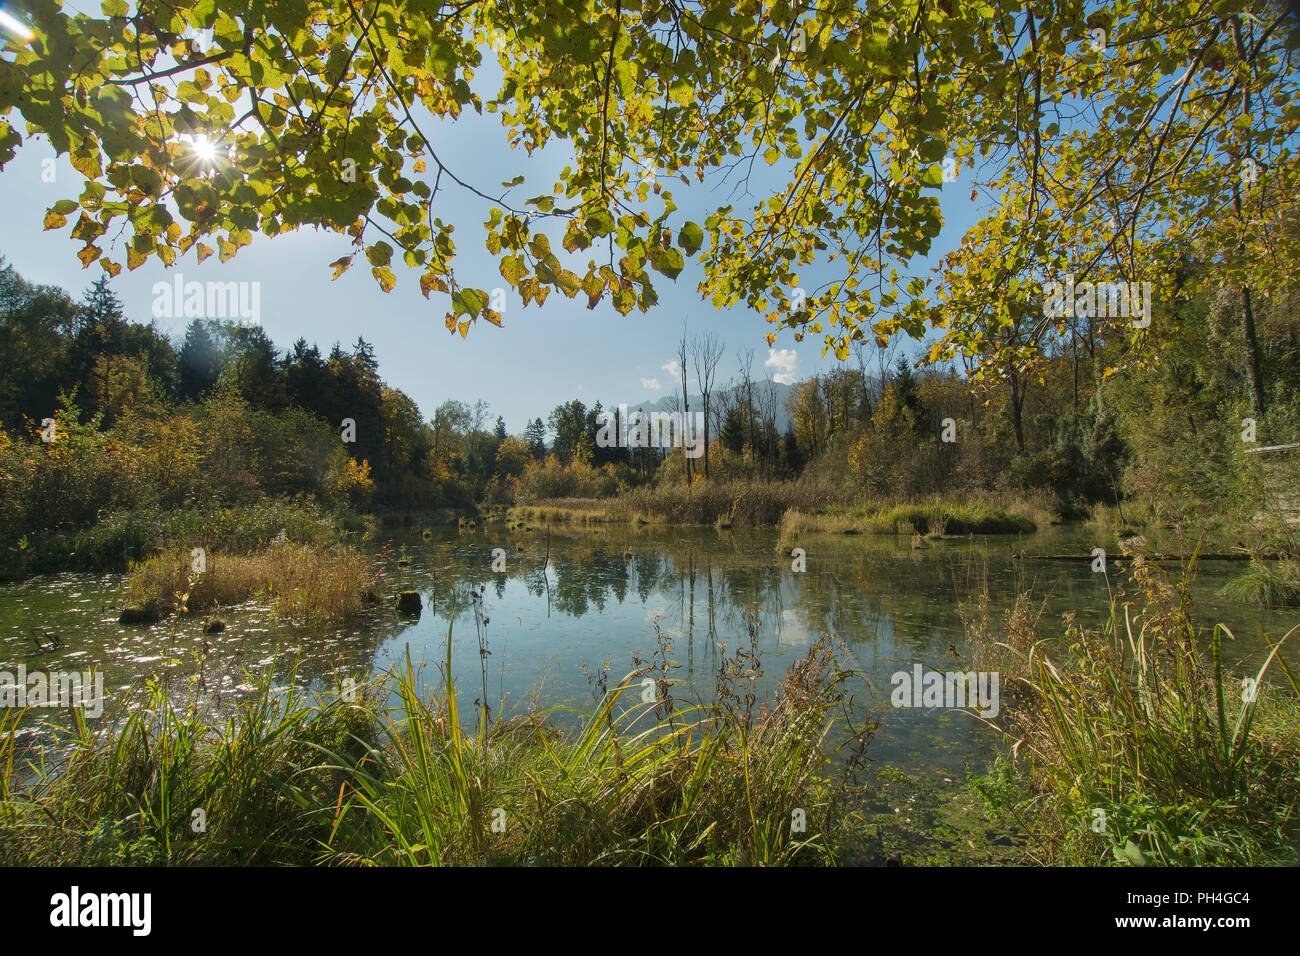 The Marzoller Au, Germany's southernmost, still-preserved riparian forest reserve with lowland character. Oberbayern, Germany - Stock Image